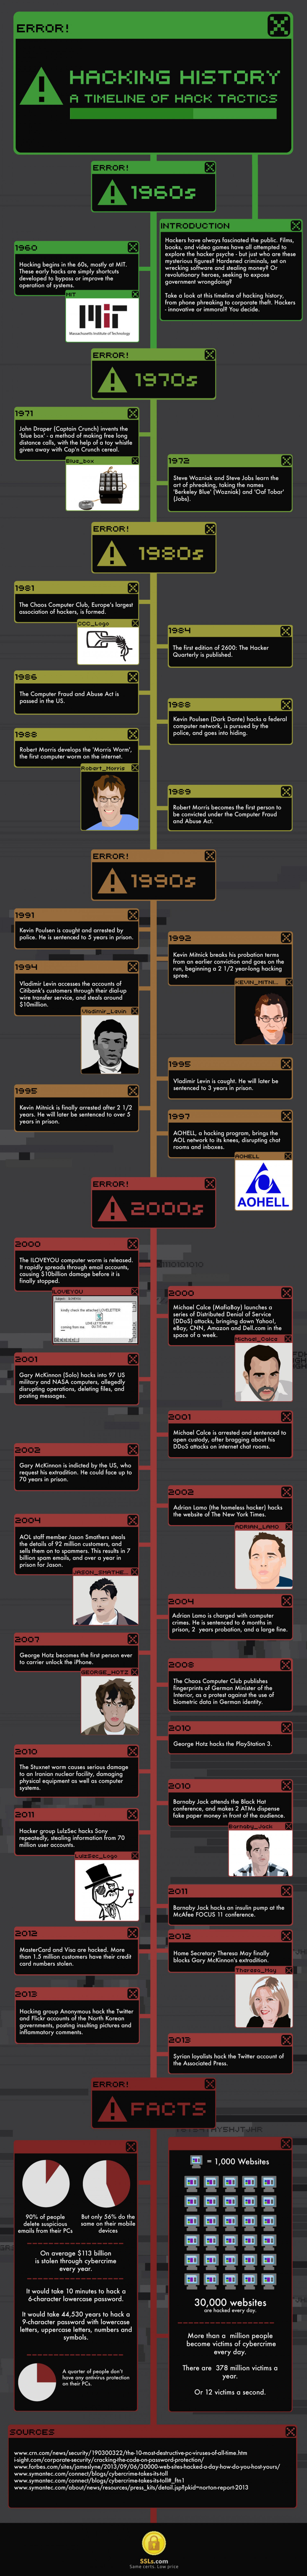 Hacking History: A Timeline of Hack Tactics Infographic